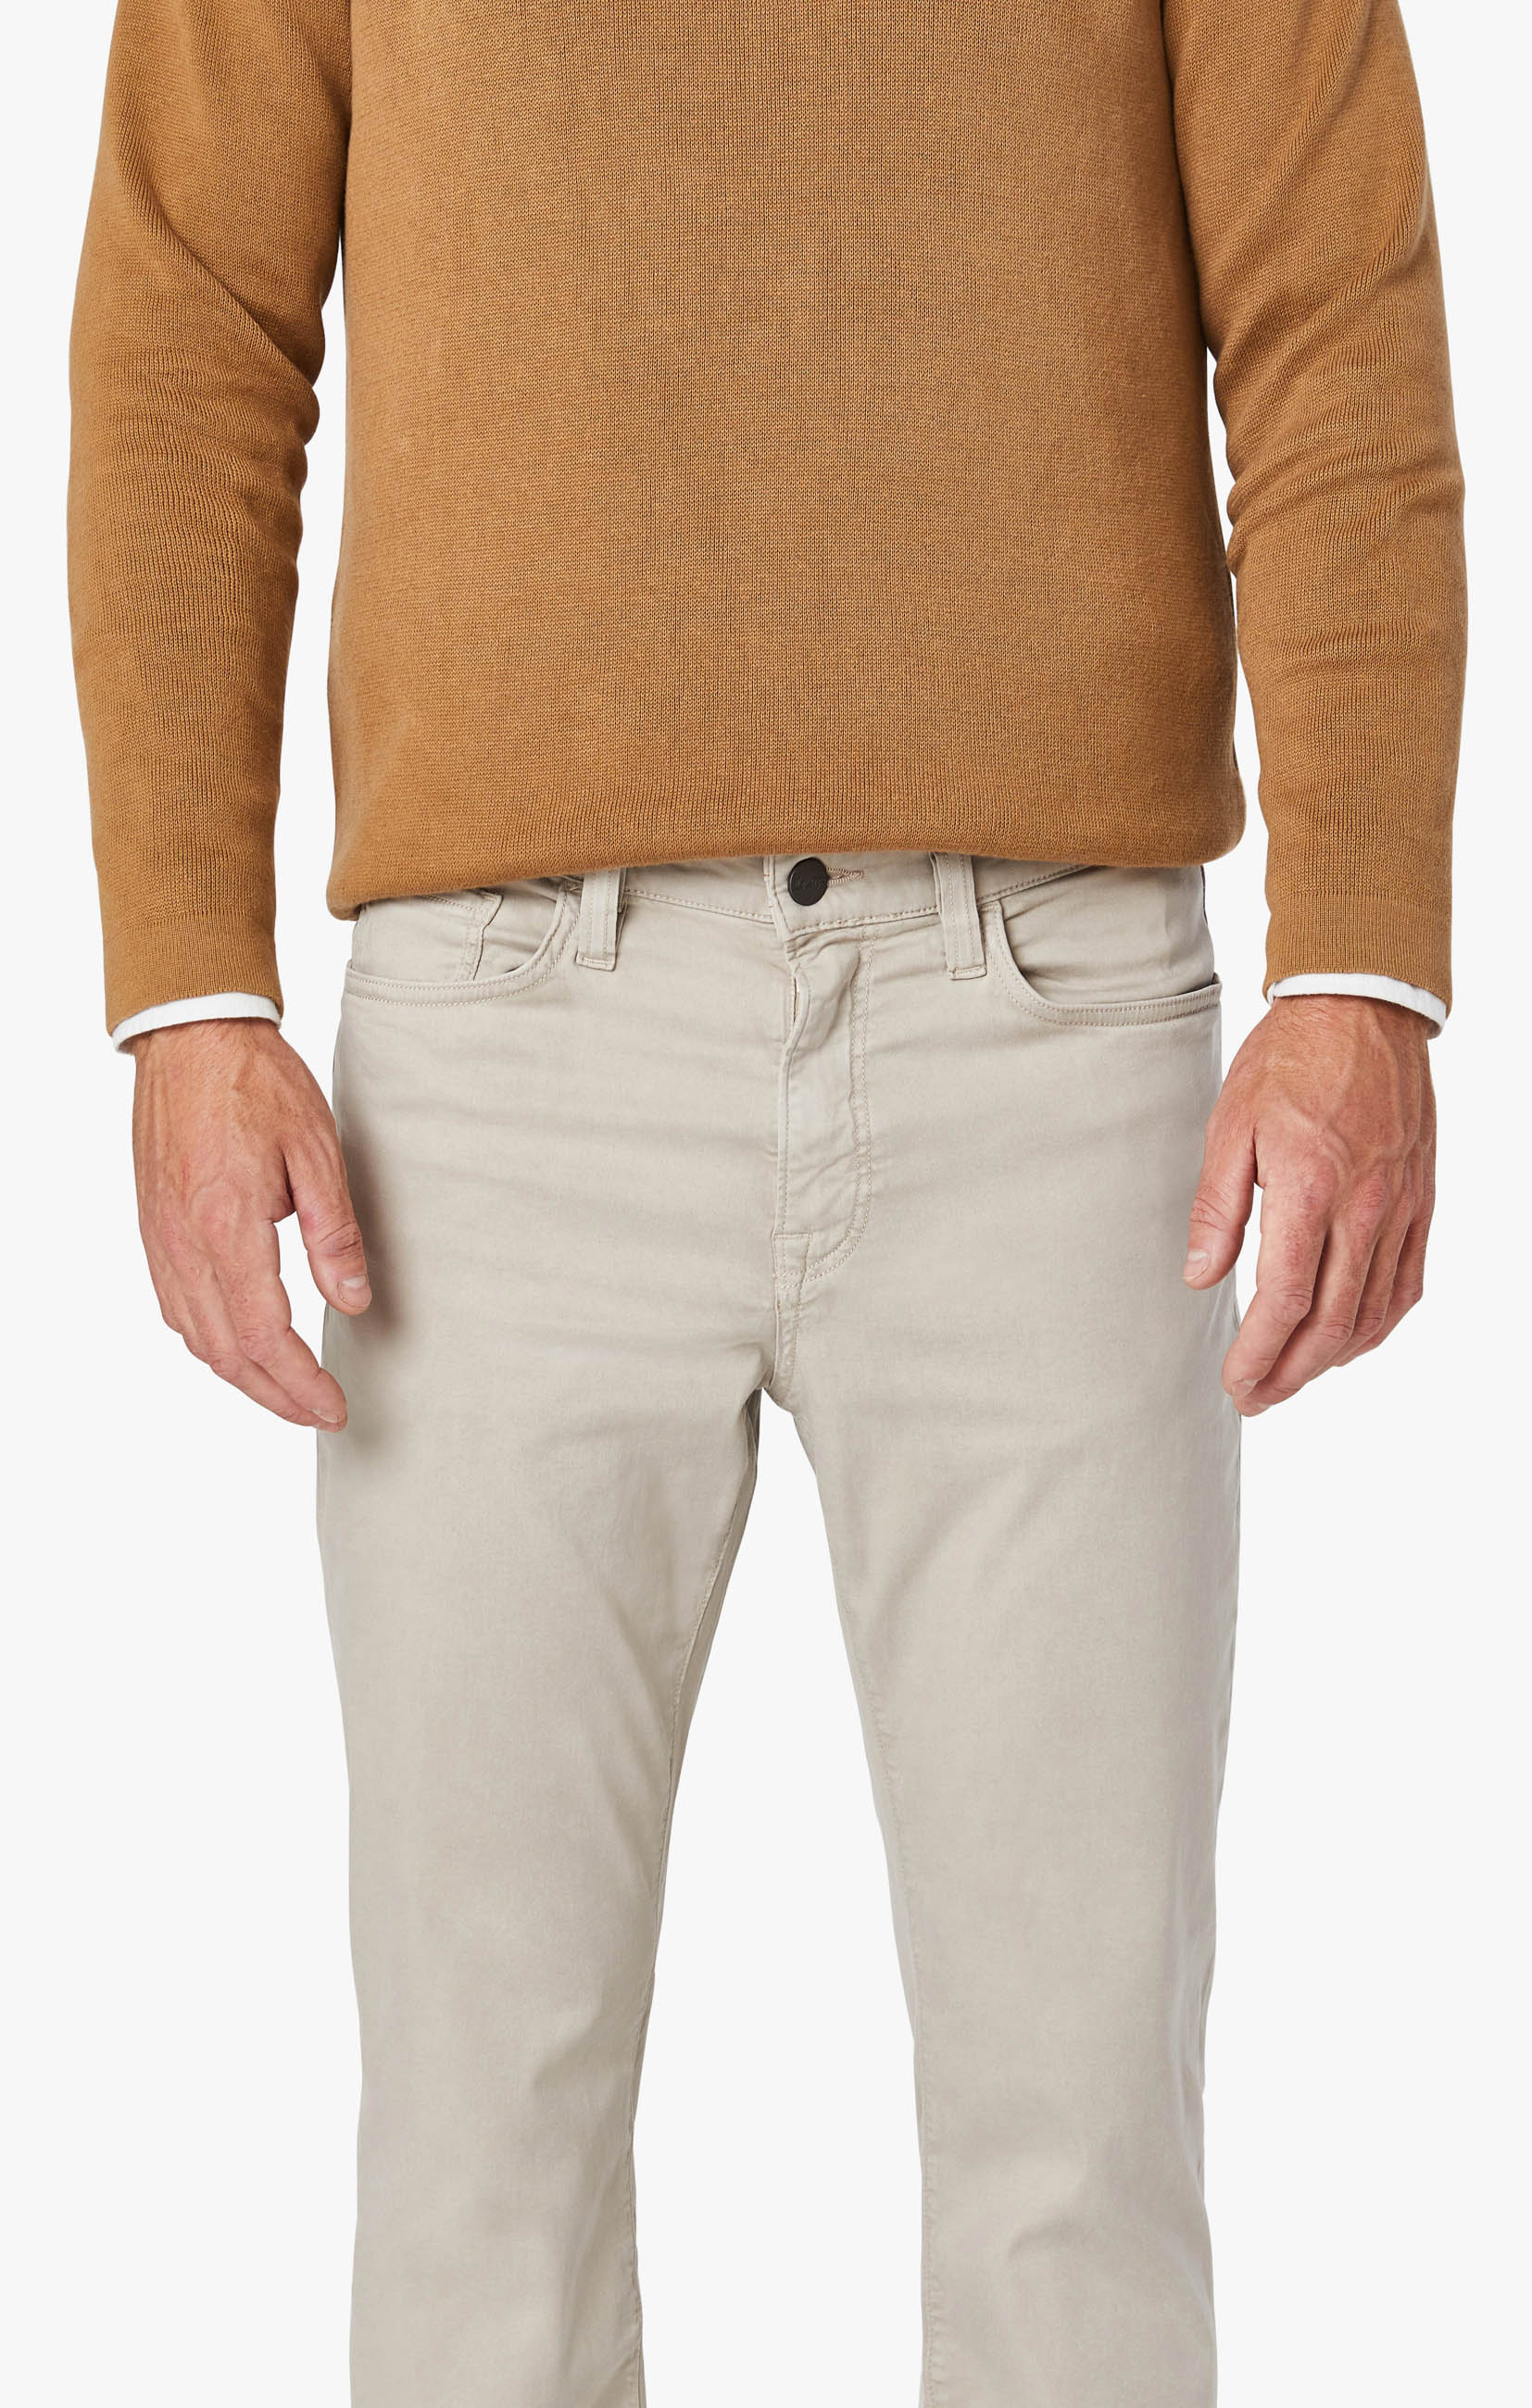 Charisma Relaxed Straight Leg Pants in Dawn Twill Image 7